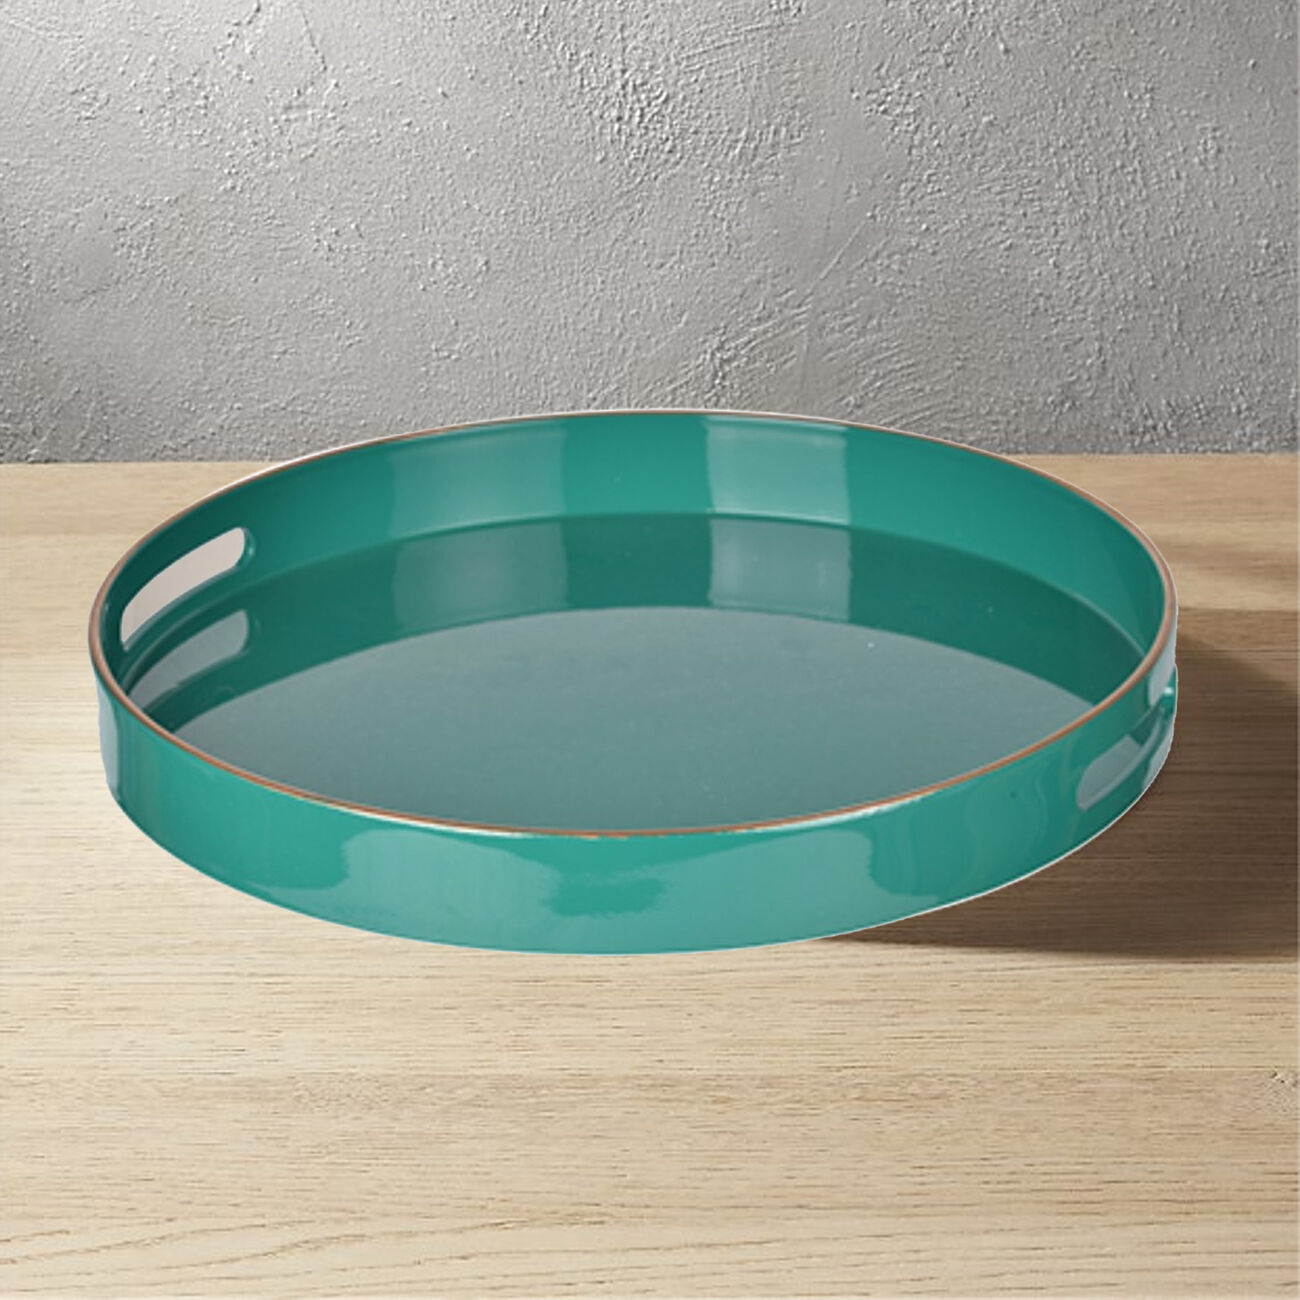 Mimosa Round Tray With Cutout Handles, Green